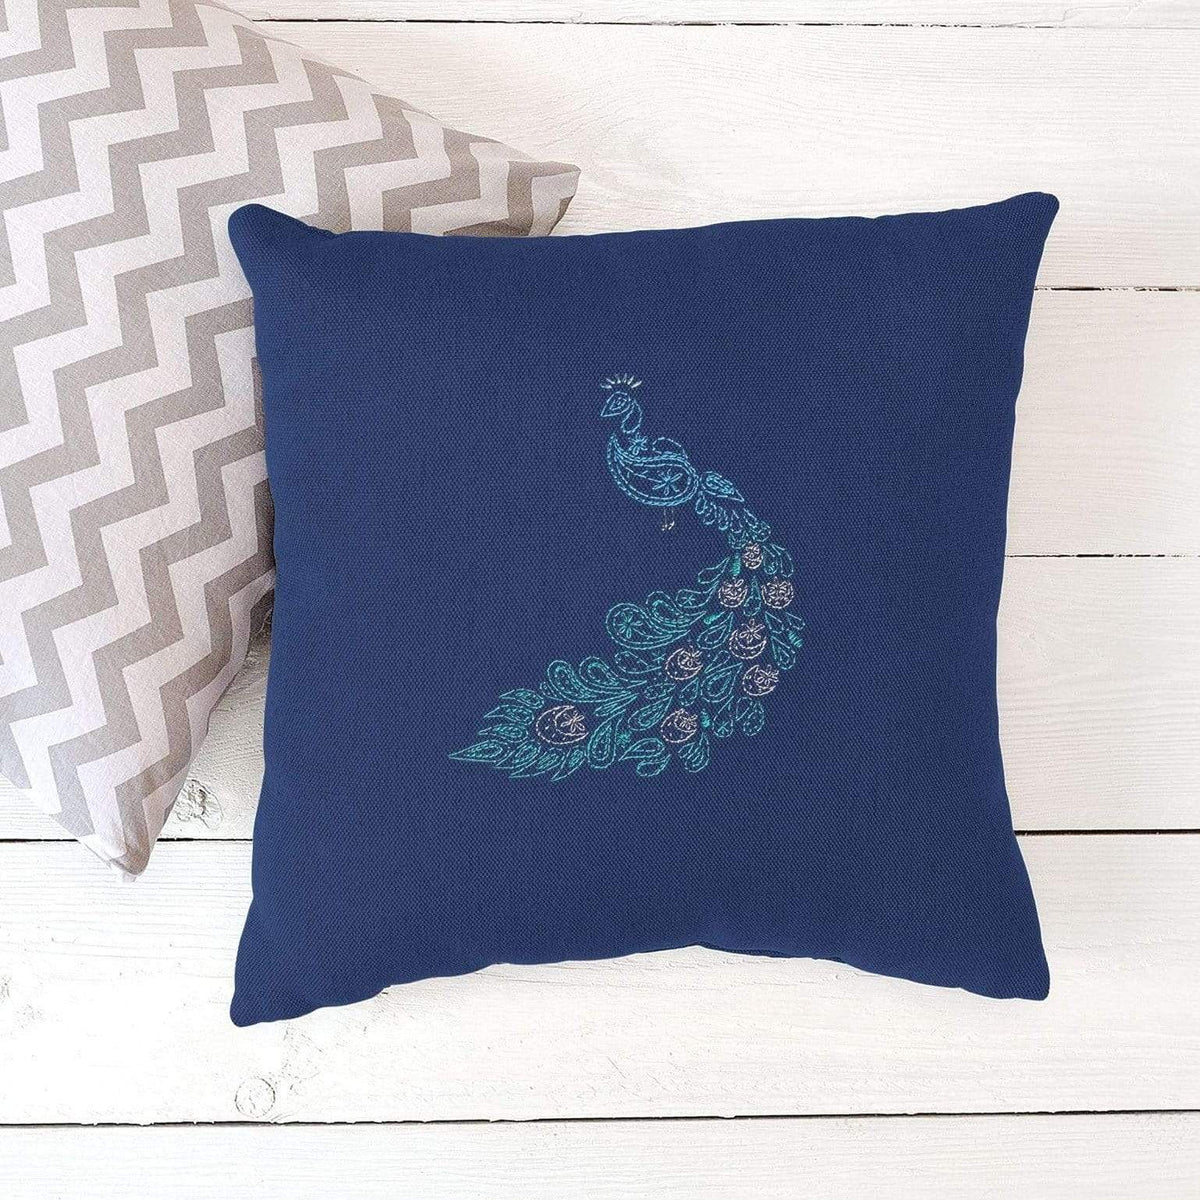 Paraffle Embroidery Cushion Embroidery Kit Peacock Cushion Kit & Pattern